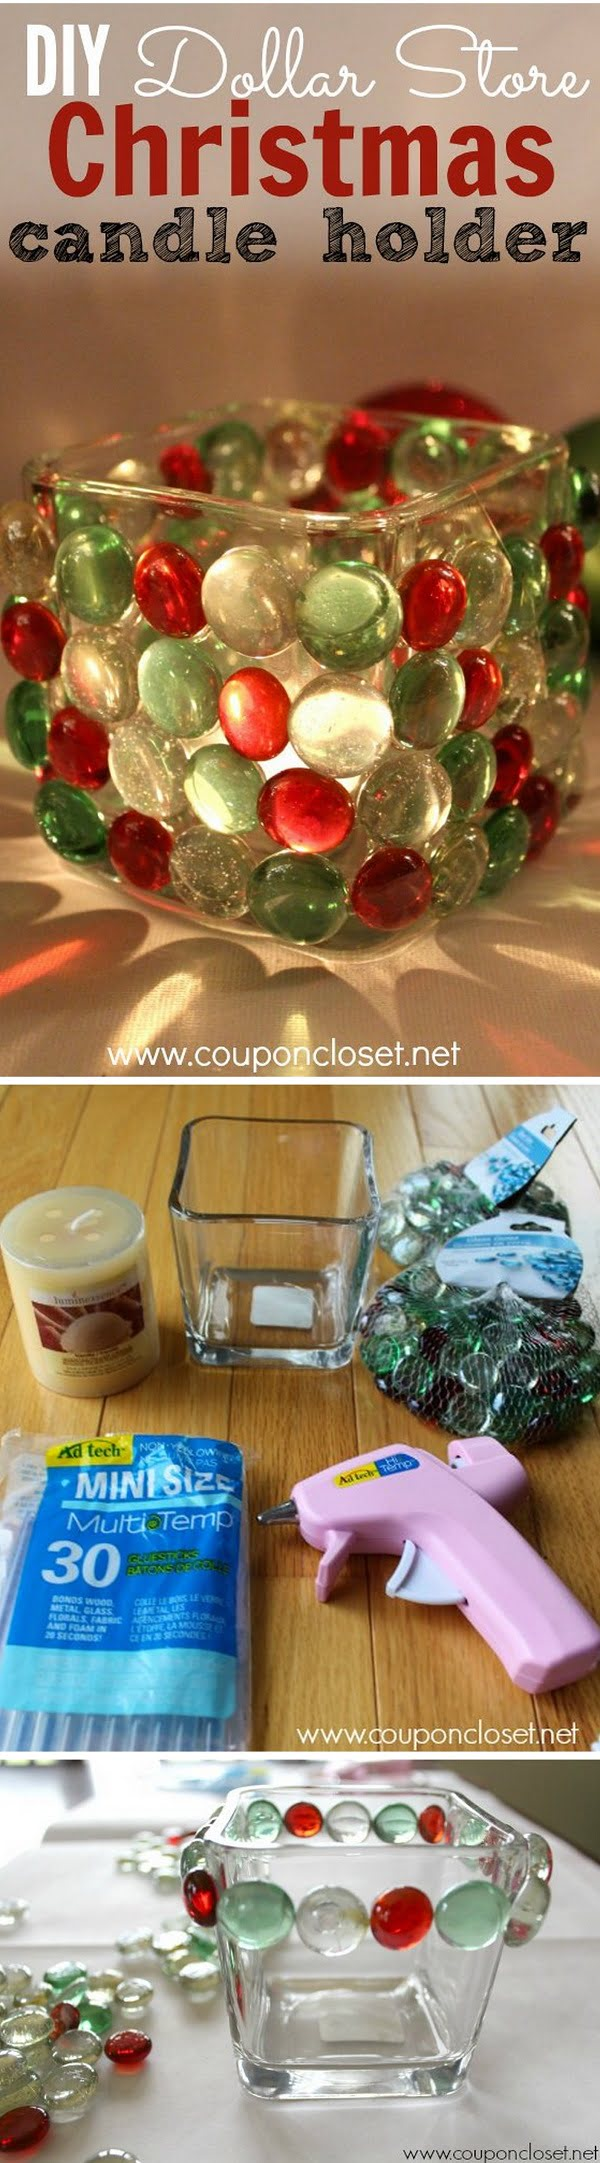 Check out this easy idea on how to make a   candle holder from  items